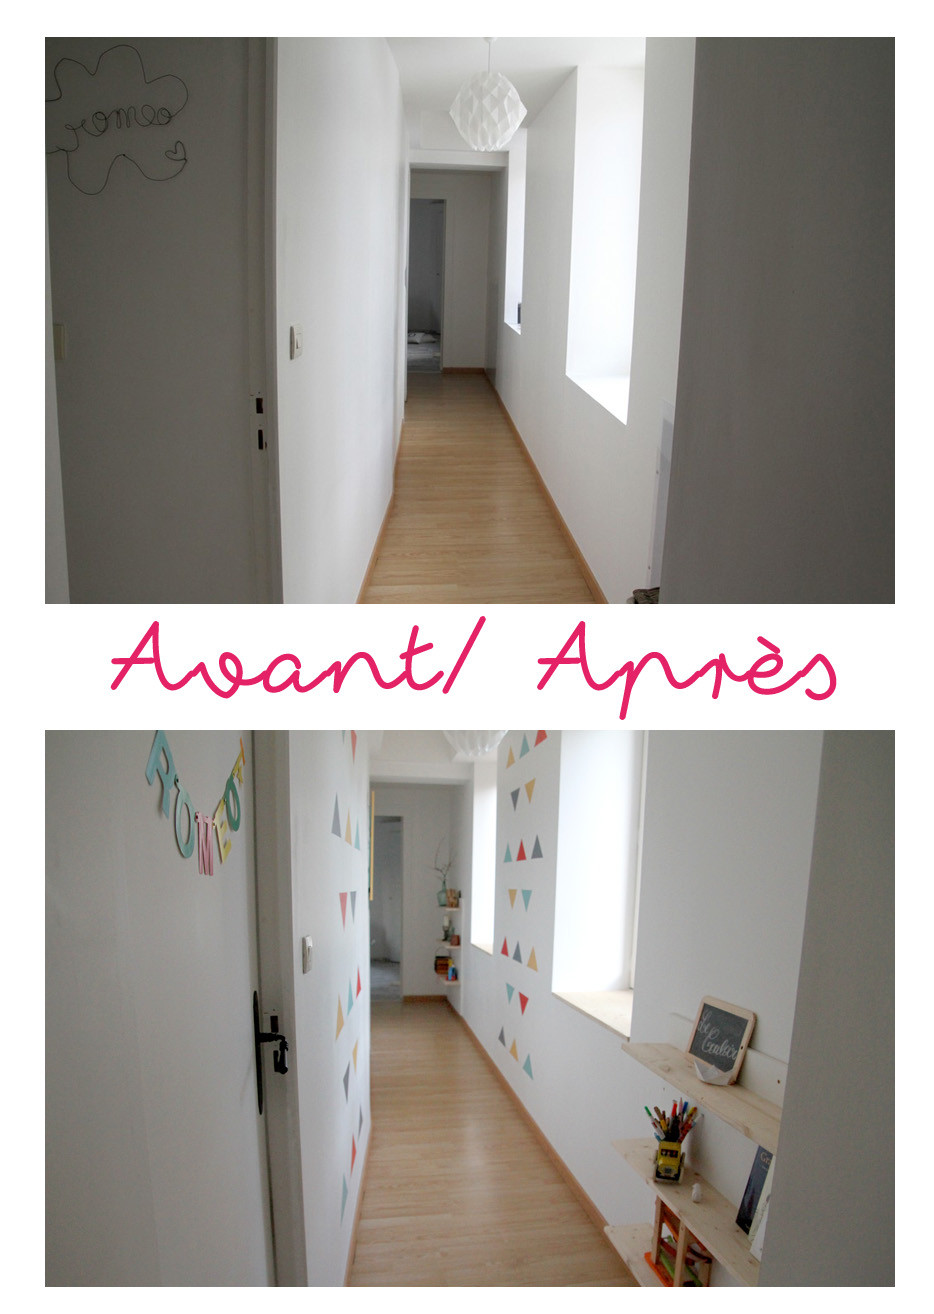 Le couloir avant apr s for 2 chambres en enfilade